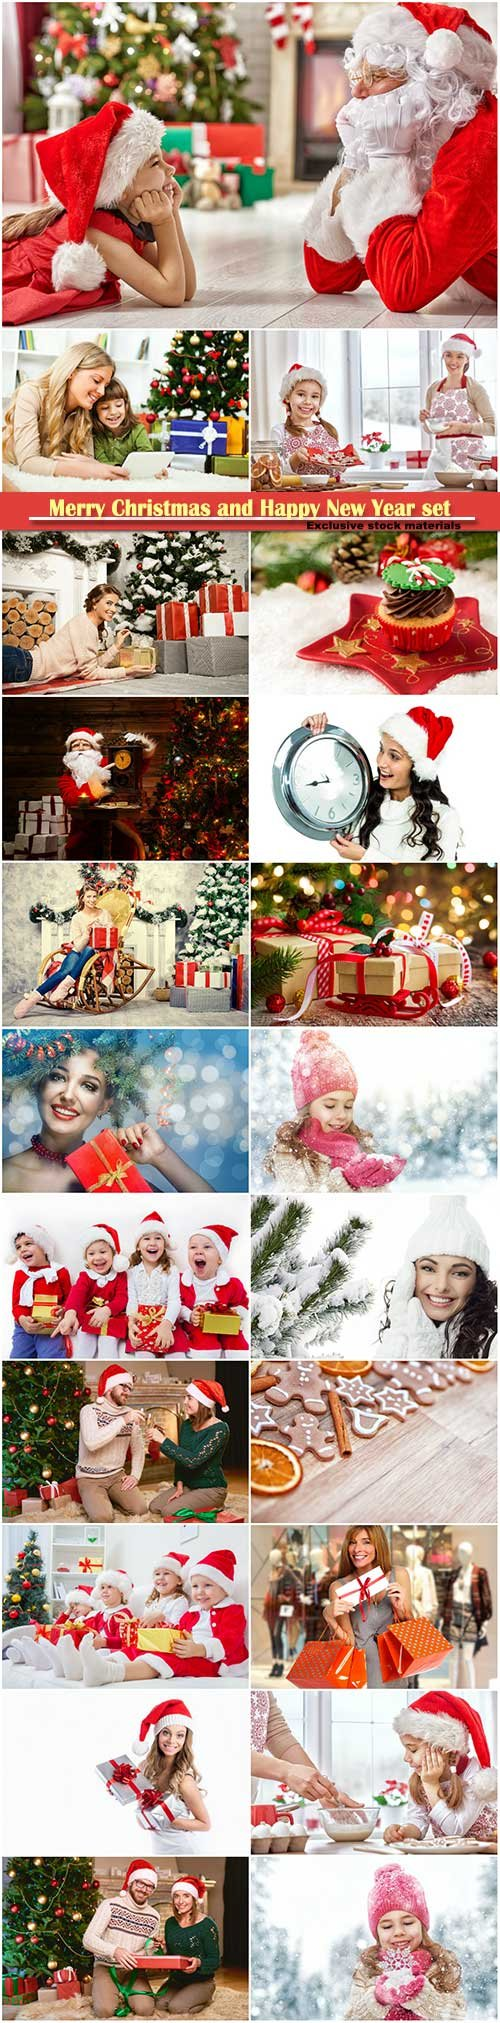 Merry Christmas and Happy New Year stock set # 4